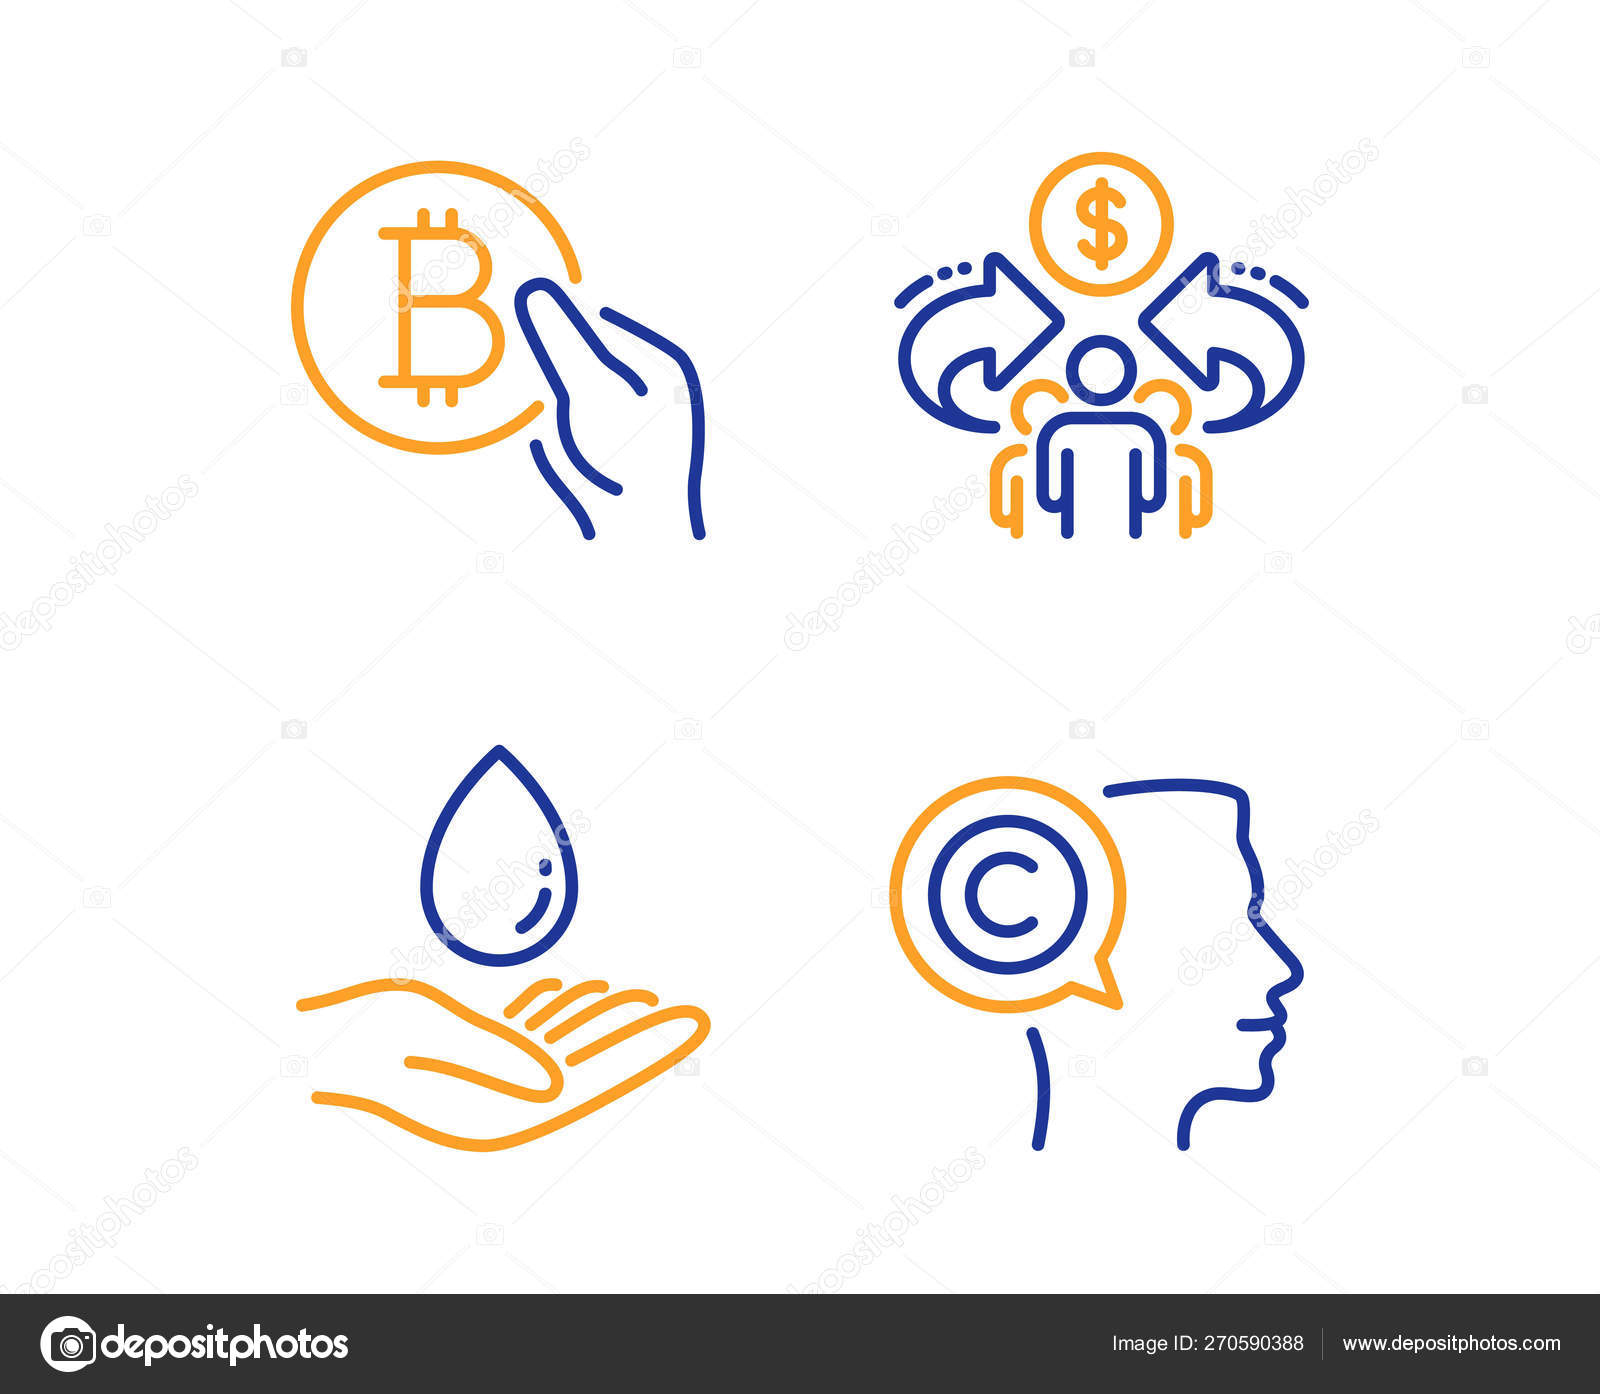 Sharing economy, Water care and Bitcoin pay icons set